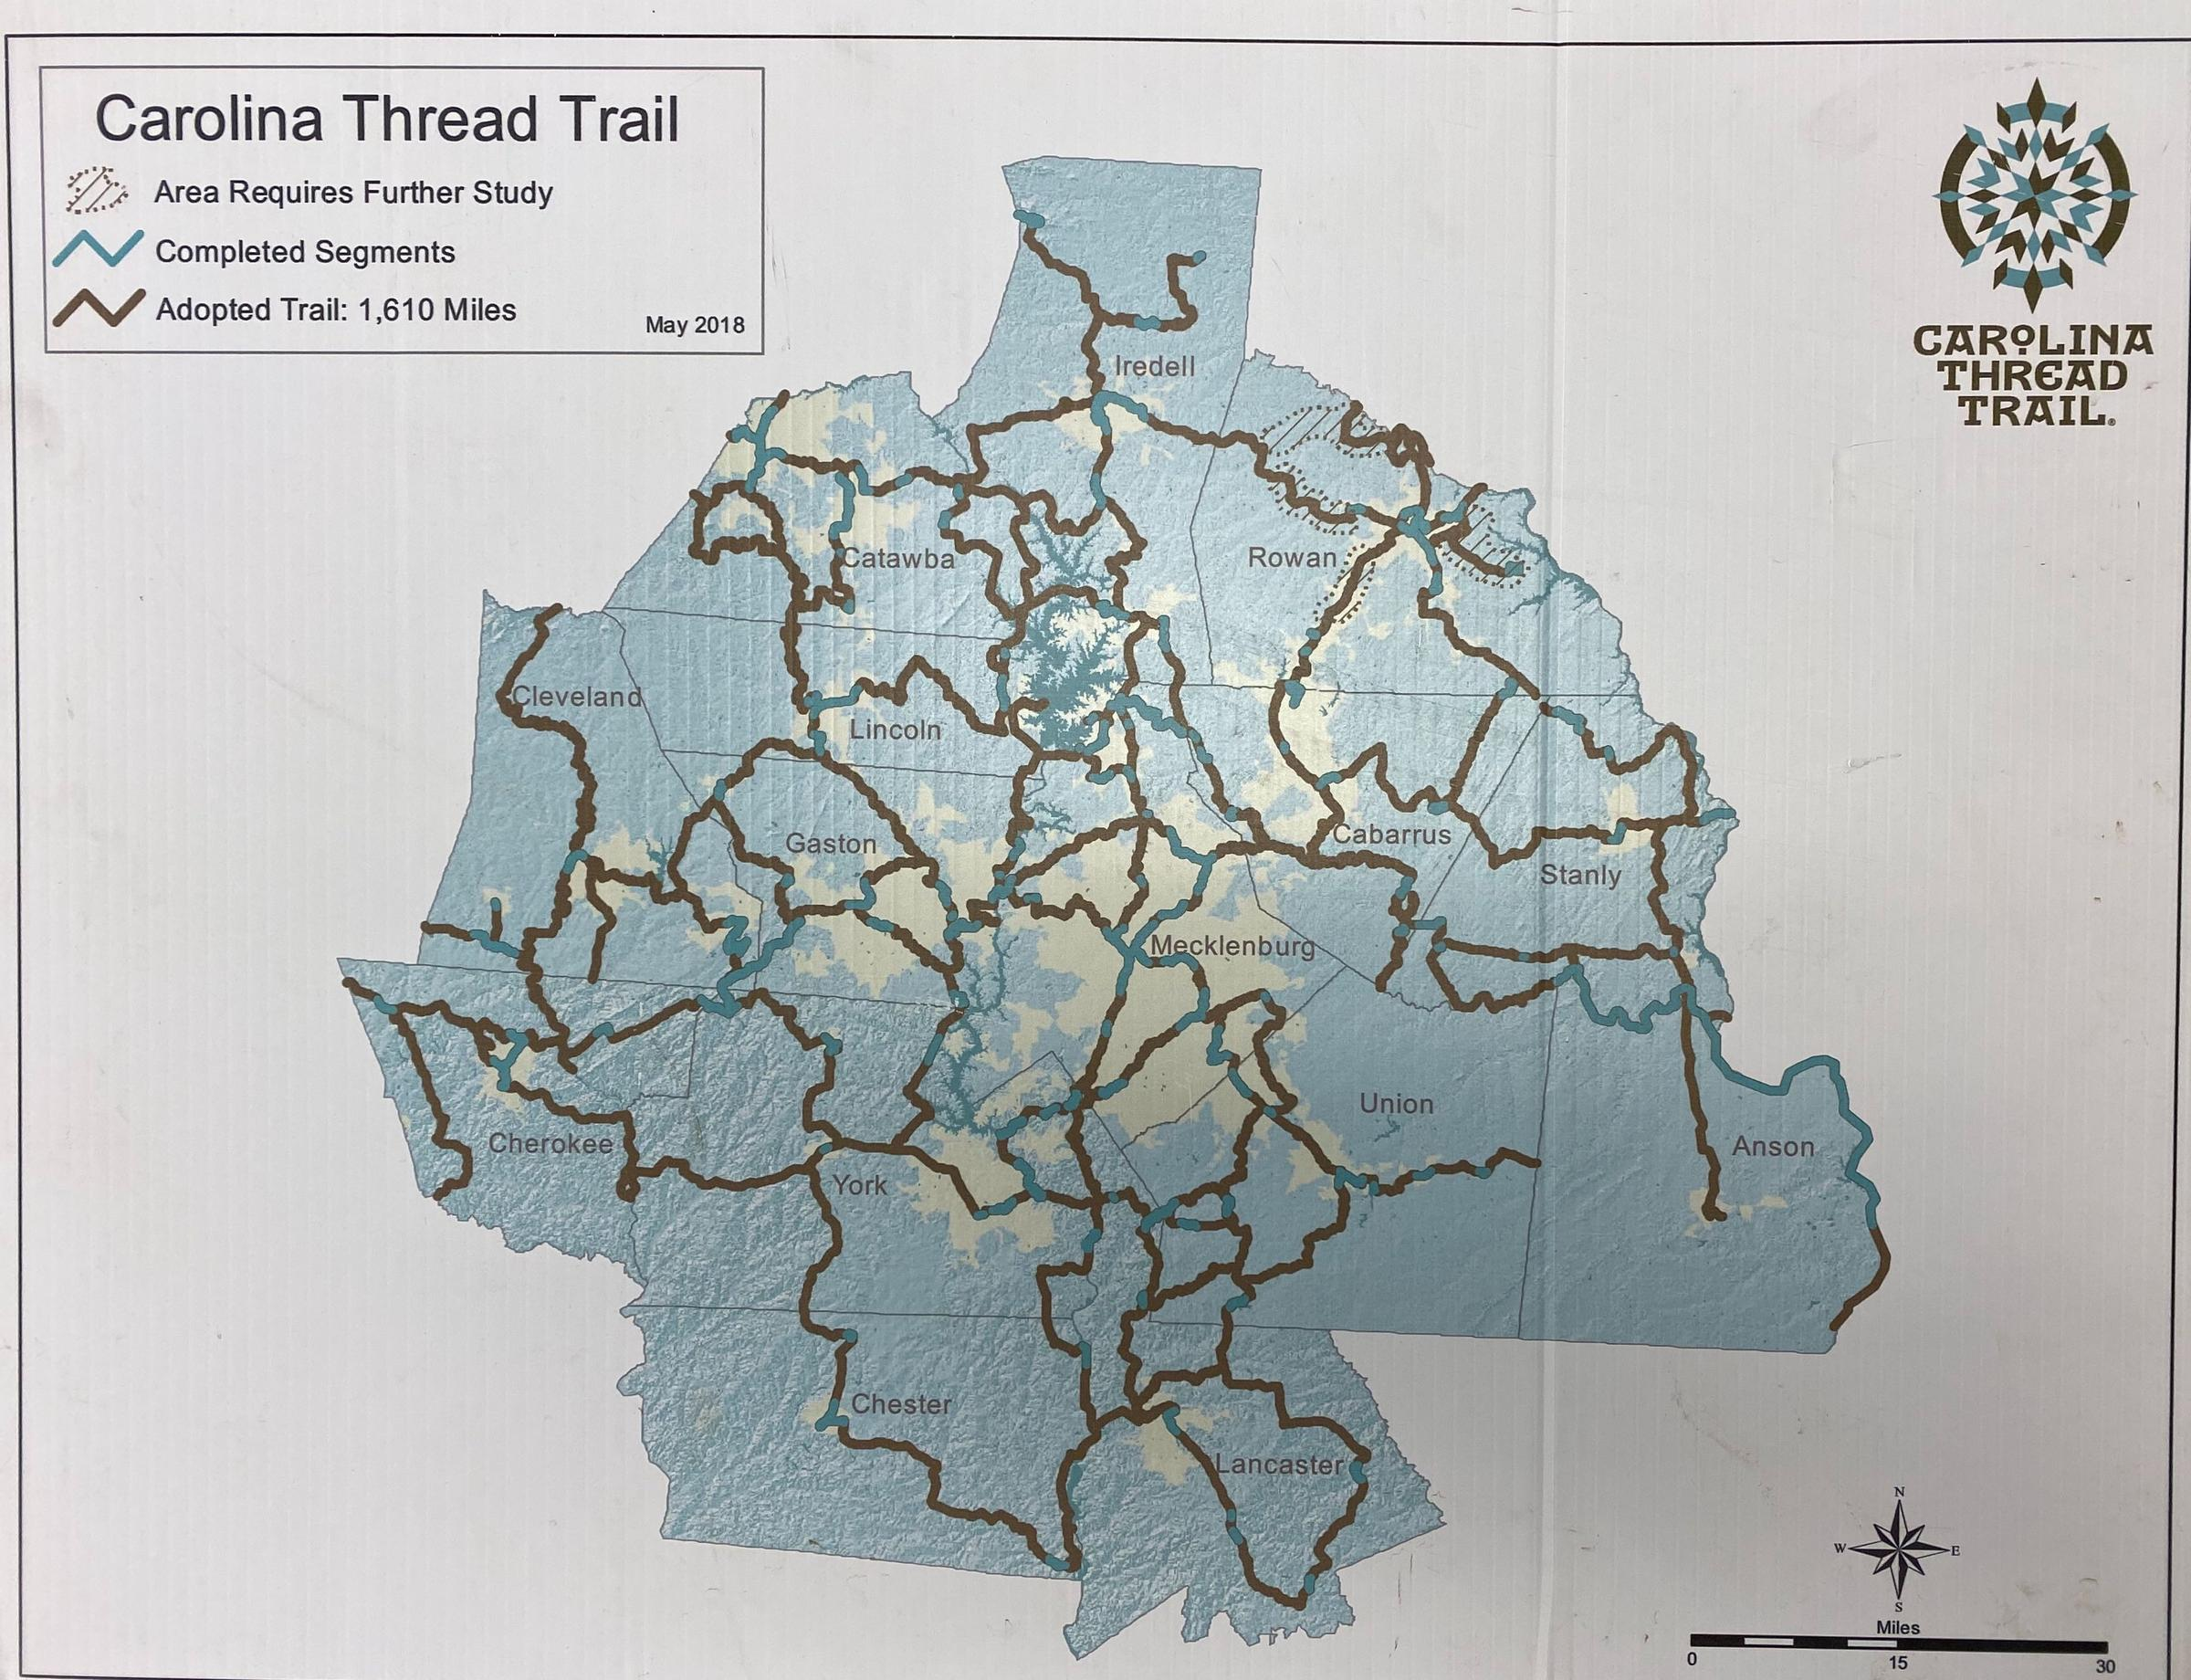 More Carolina Thread Trail Miles Open In 2019 -- But There's ... on plan view trail, westward trail, thornton lake trail, grading plan trail, fork in the trail,